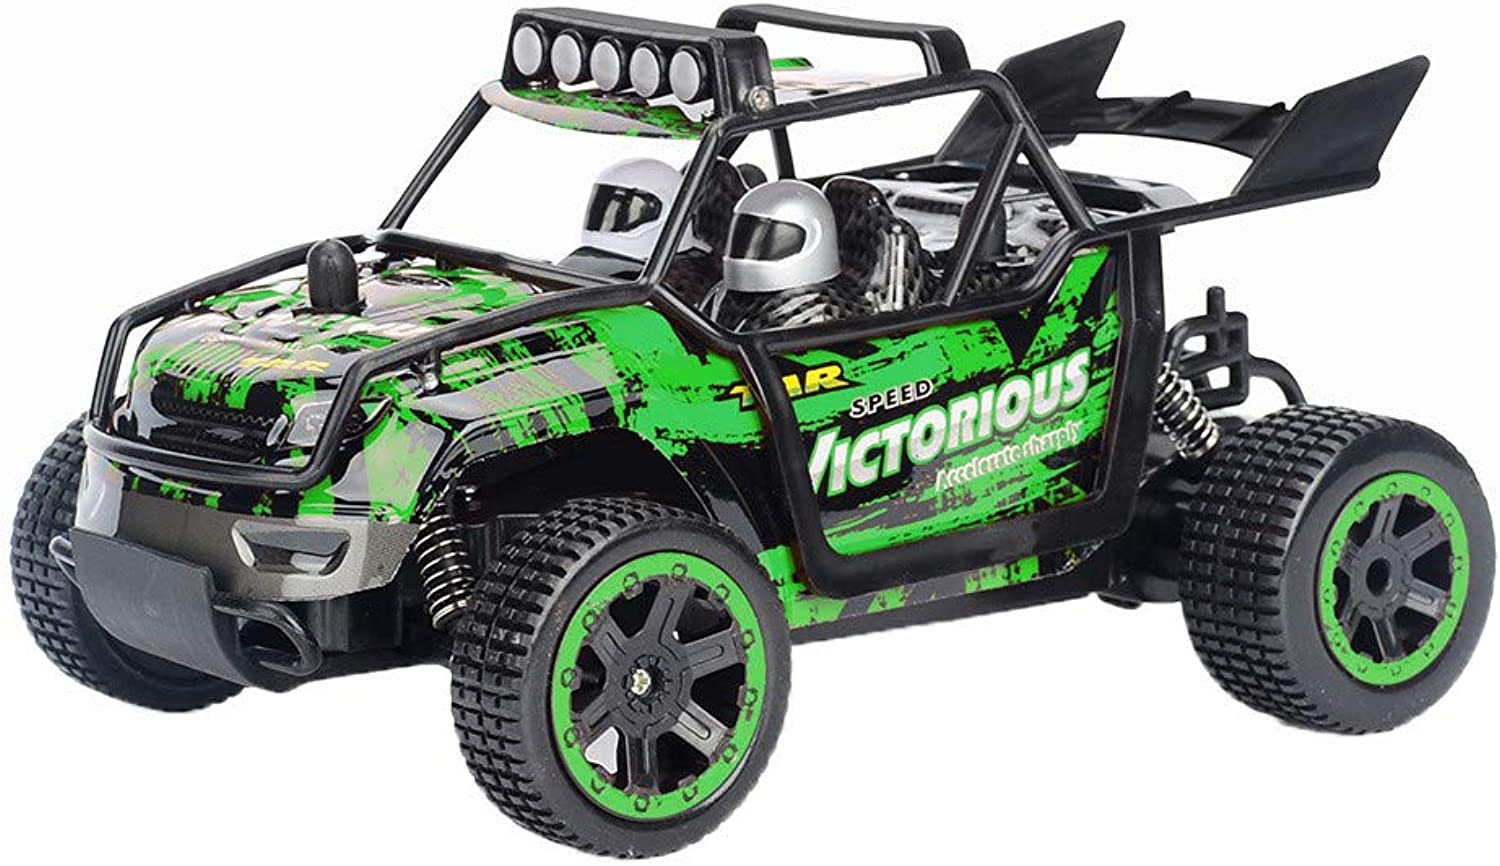 Cimaybeauty 1 20 Scale RC Car Off Road Vehicle 2.4G Radio Remote Control Car Racing